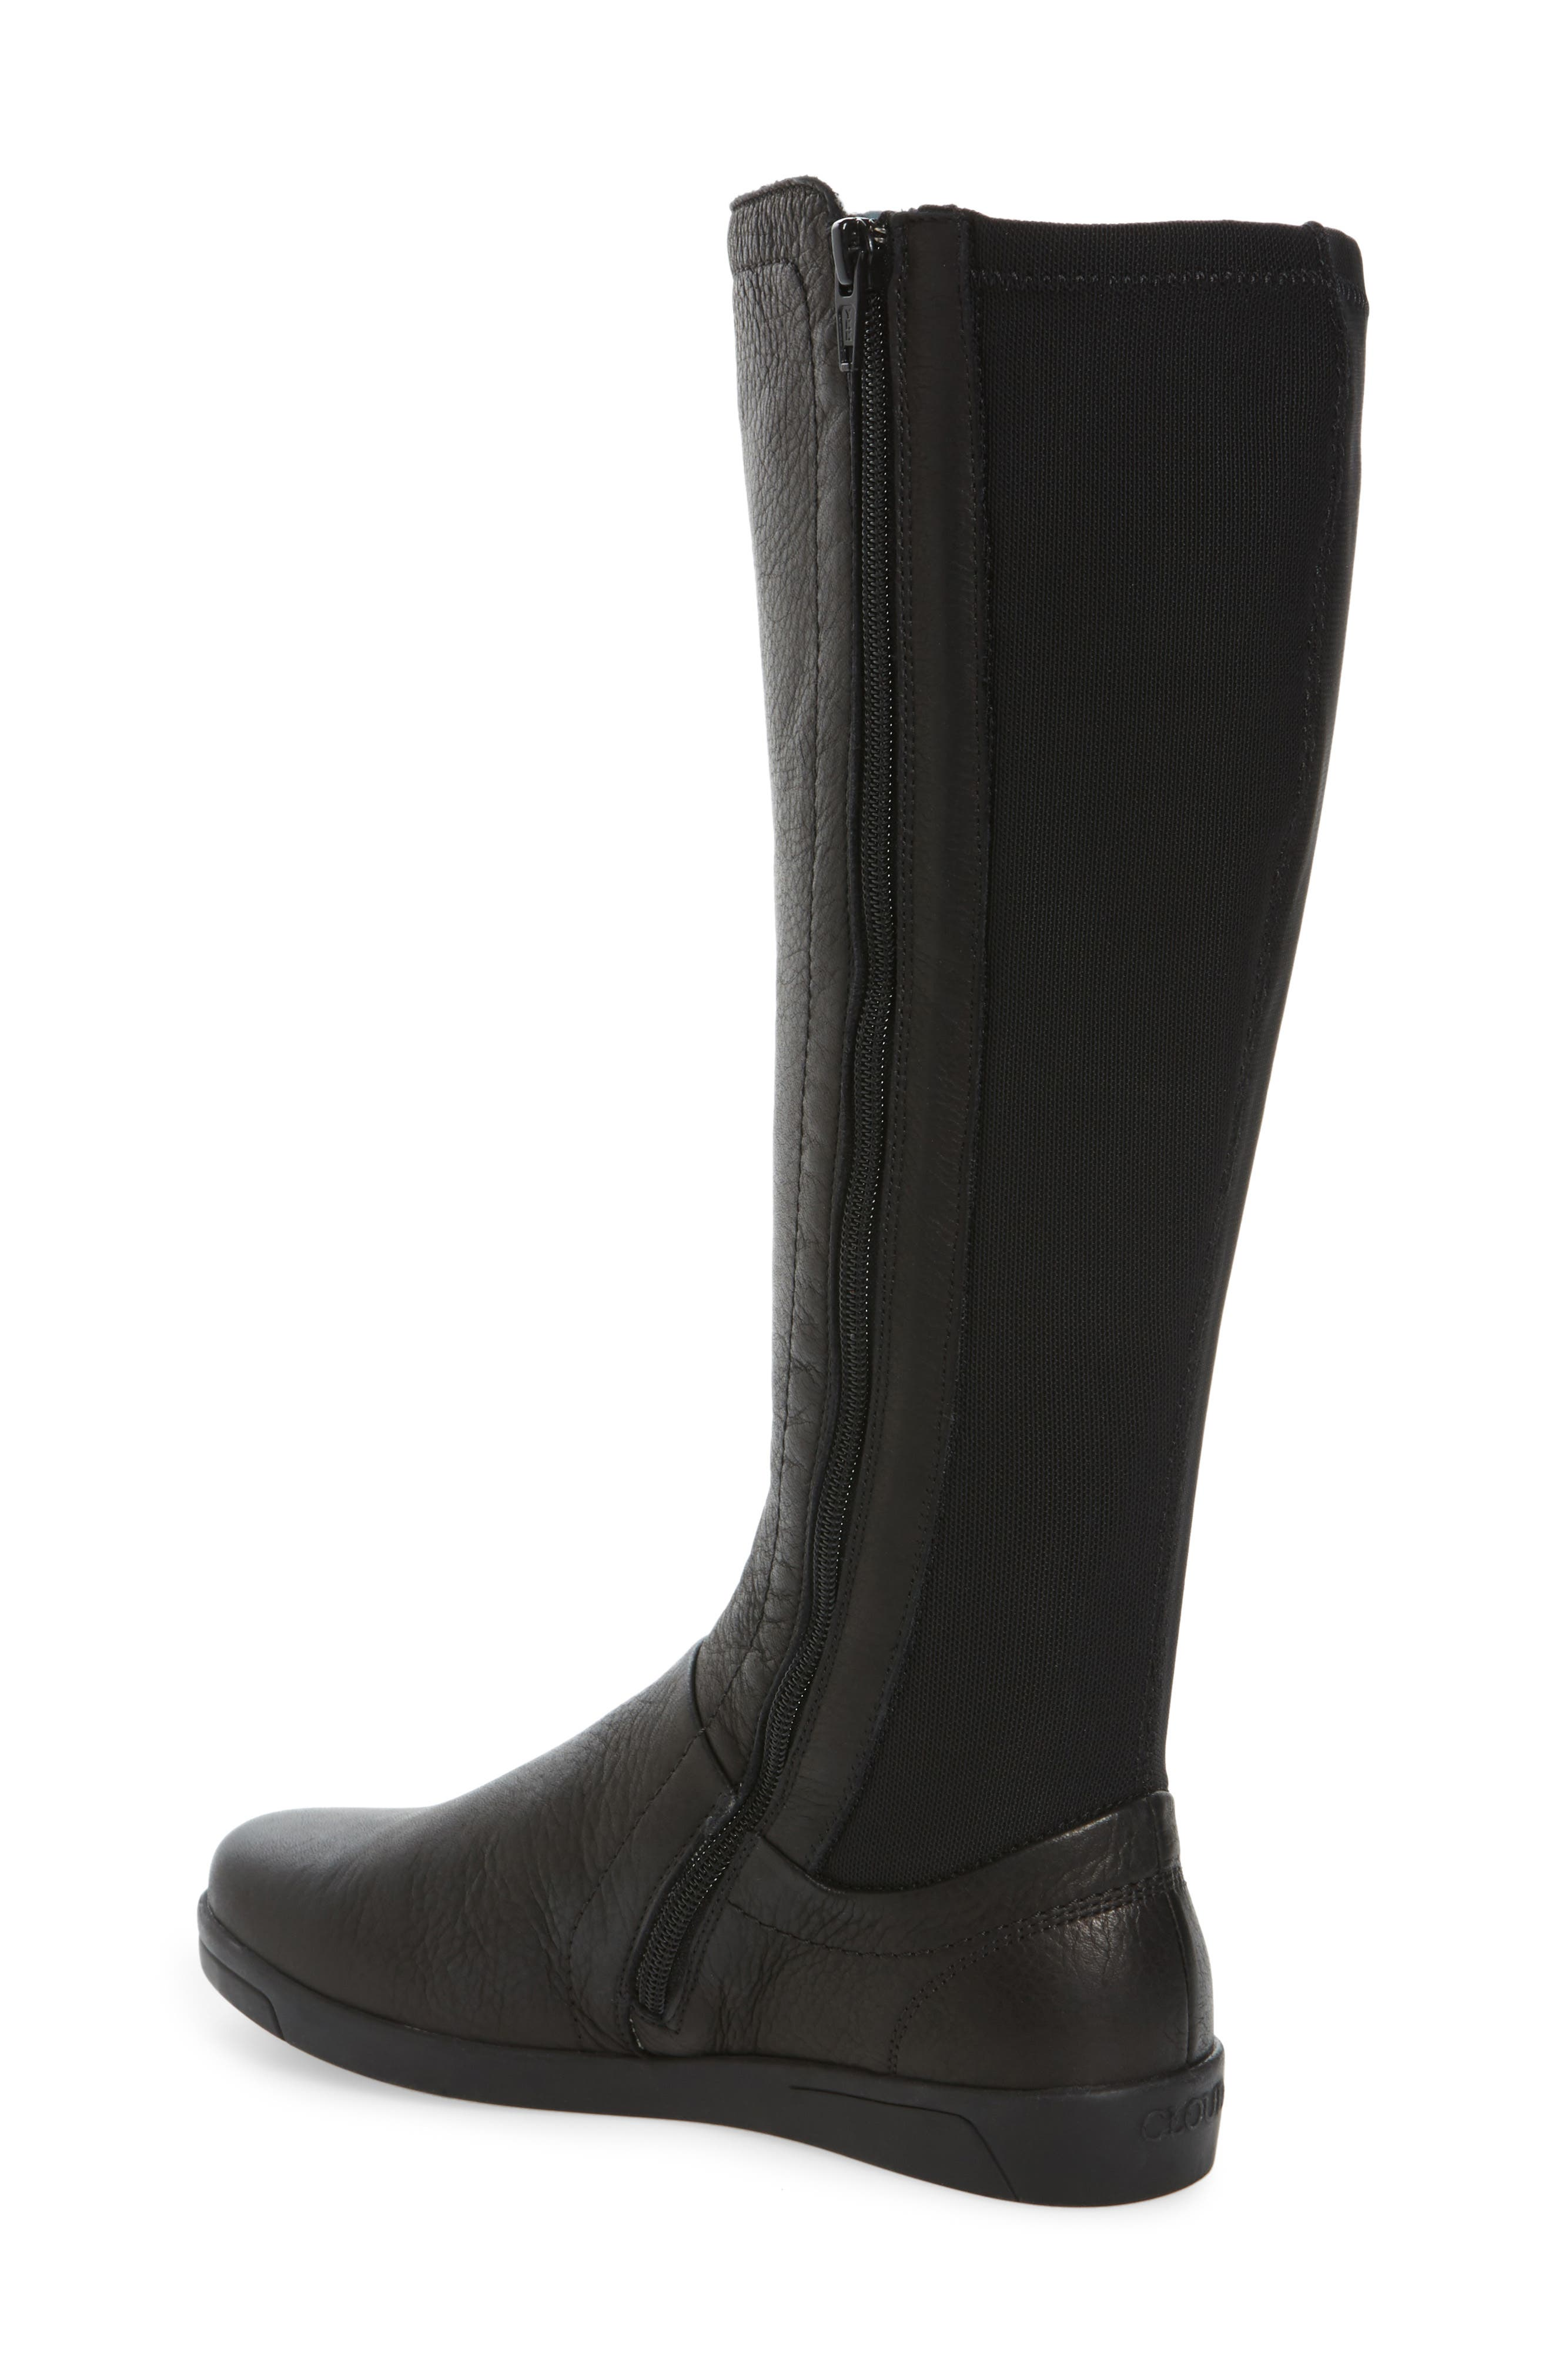 Ace Tall Boot,                             Alternate thumbnail 2, color,                             Black Leather